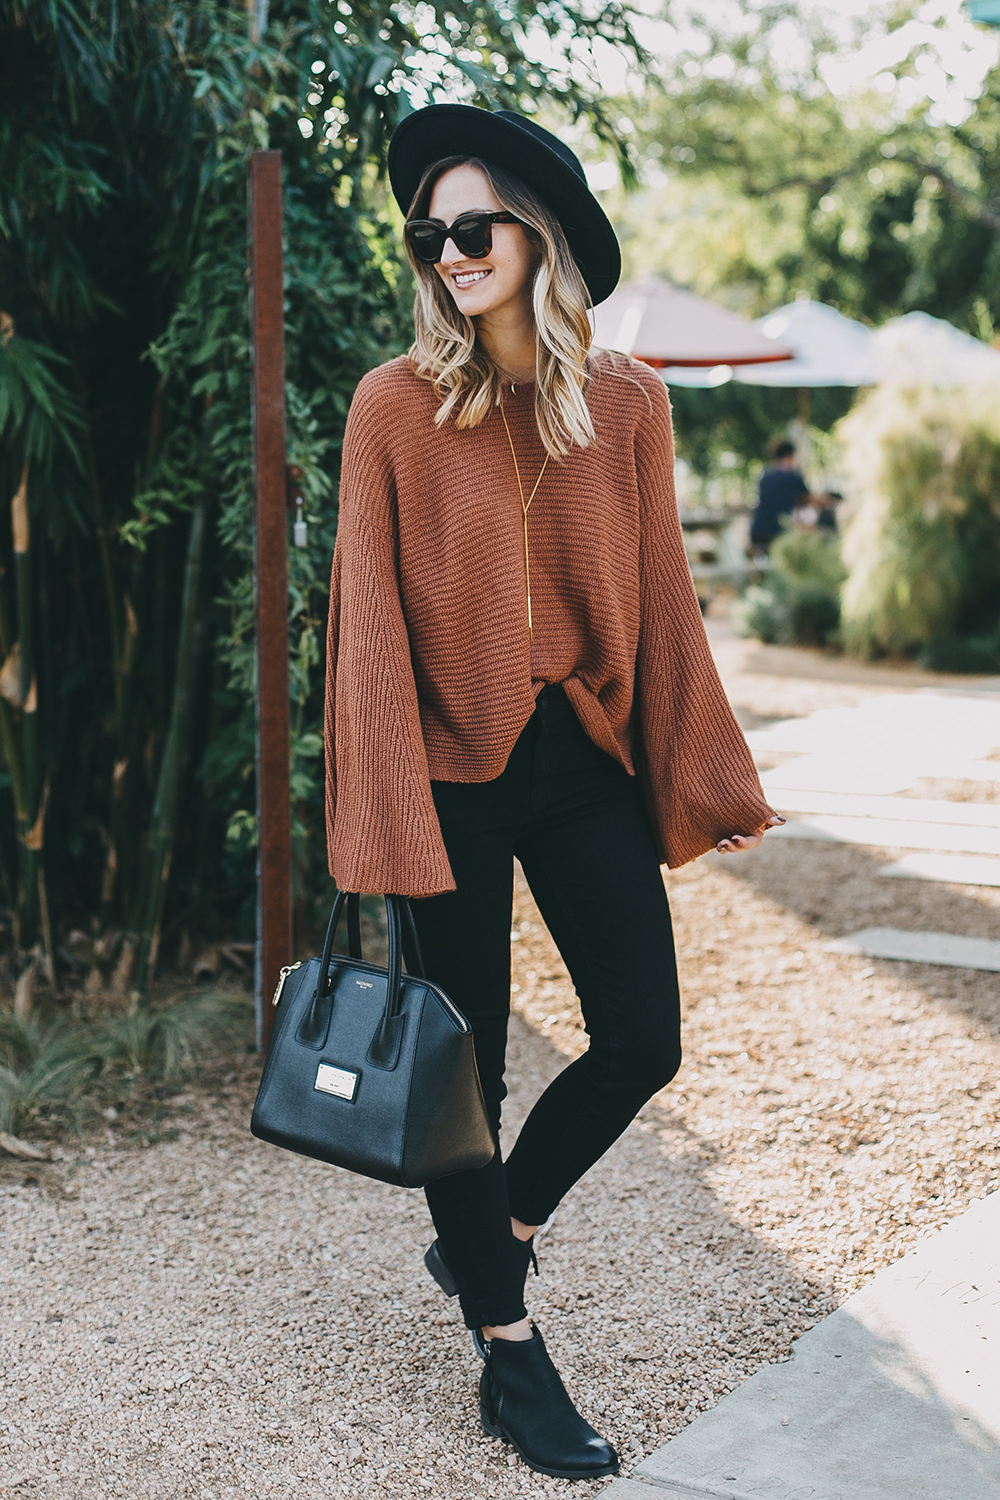 livvyland-blog-olivia-watson-austin-texas-fashion-lifestyle-blogger-fall-orange-slouchy-sweater-black-skinny-jeans-outfit-boho-fall-idea-1